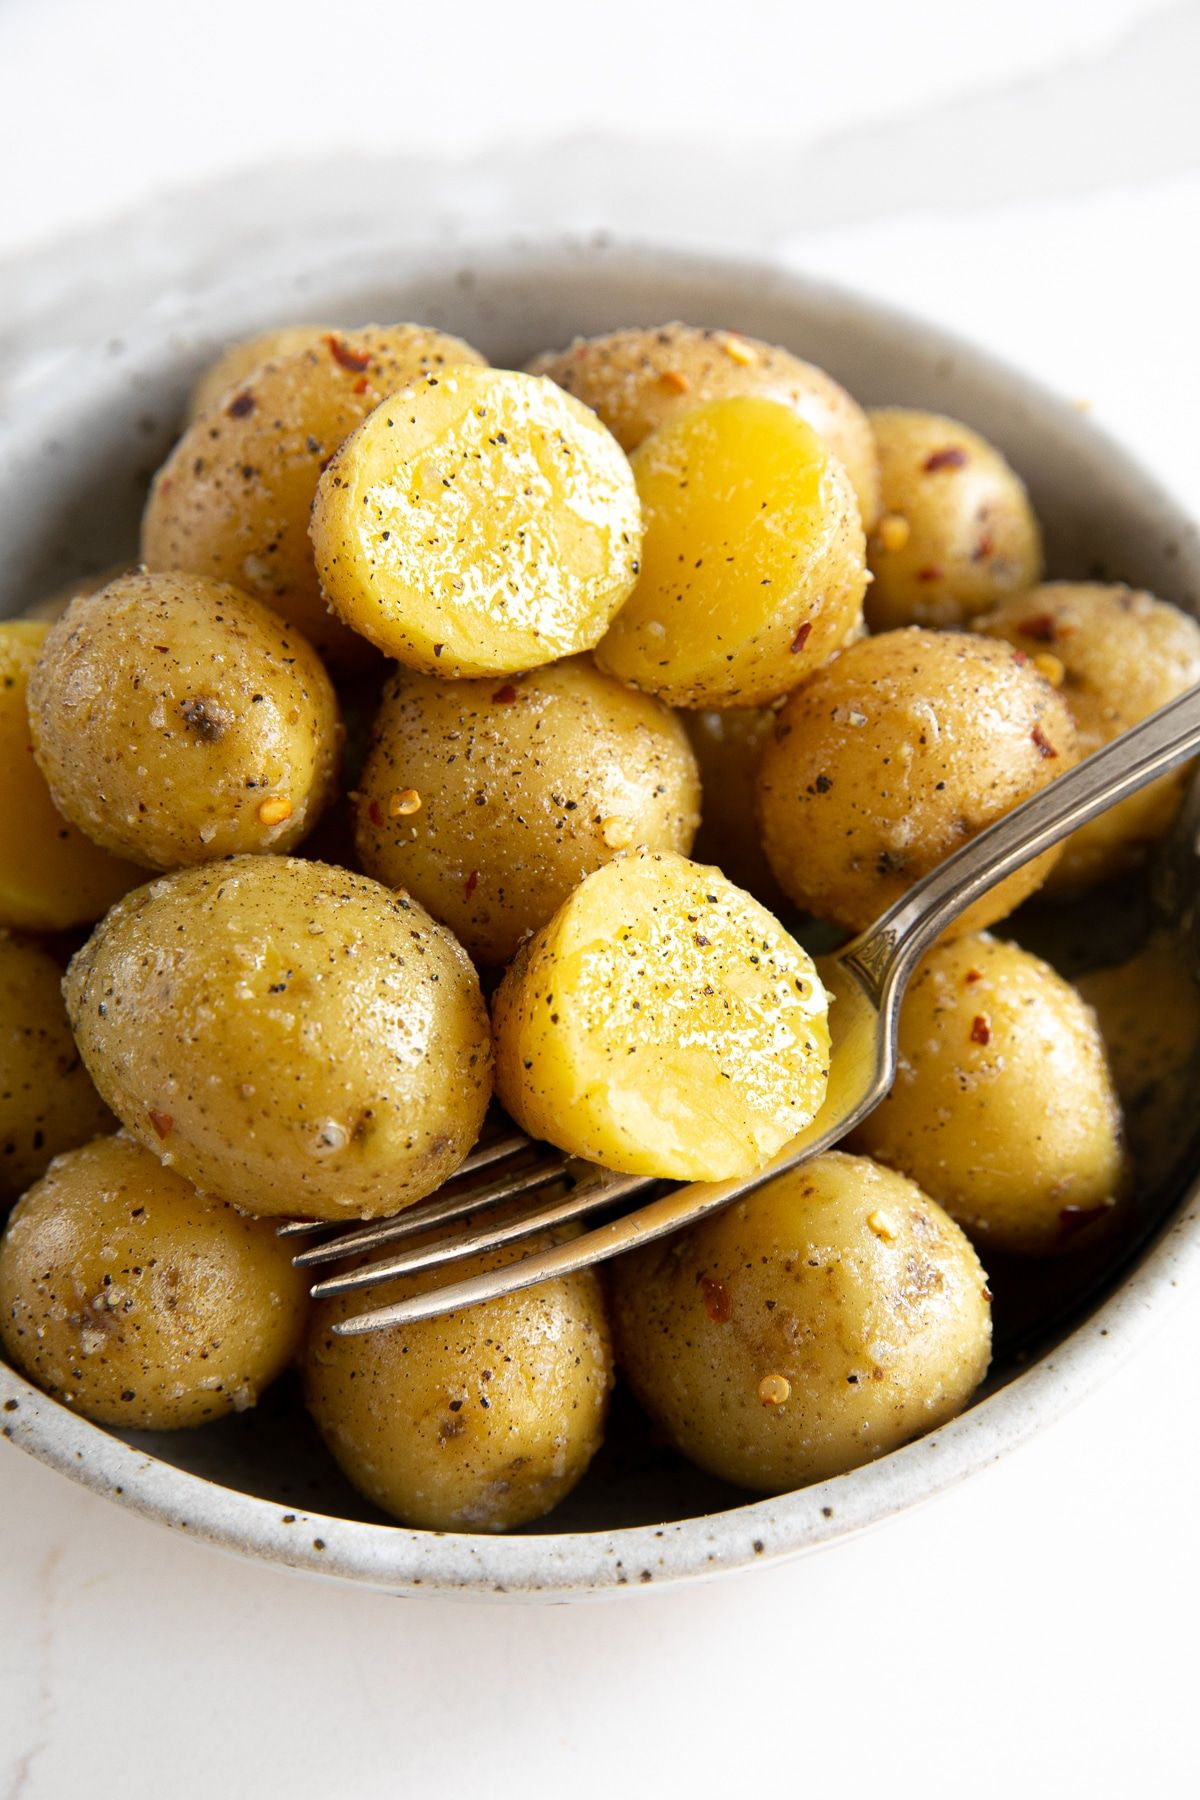 Garlic Butter Boiled Potatoes Recipe How To Boil Potatoes The Forked Spoon Recipe Boil Red Potatoes Recipe Boiled Potatoes Recipe Gold Potato Recipes